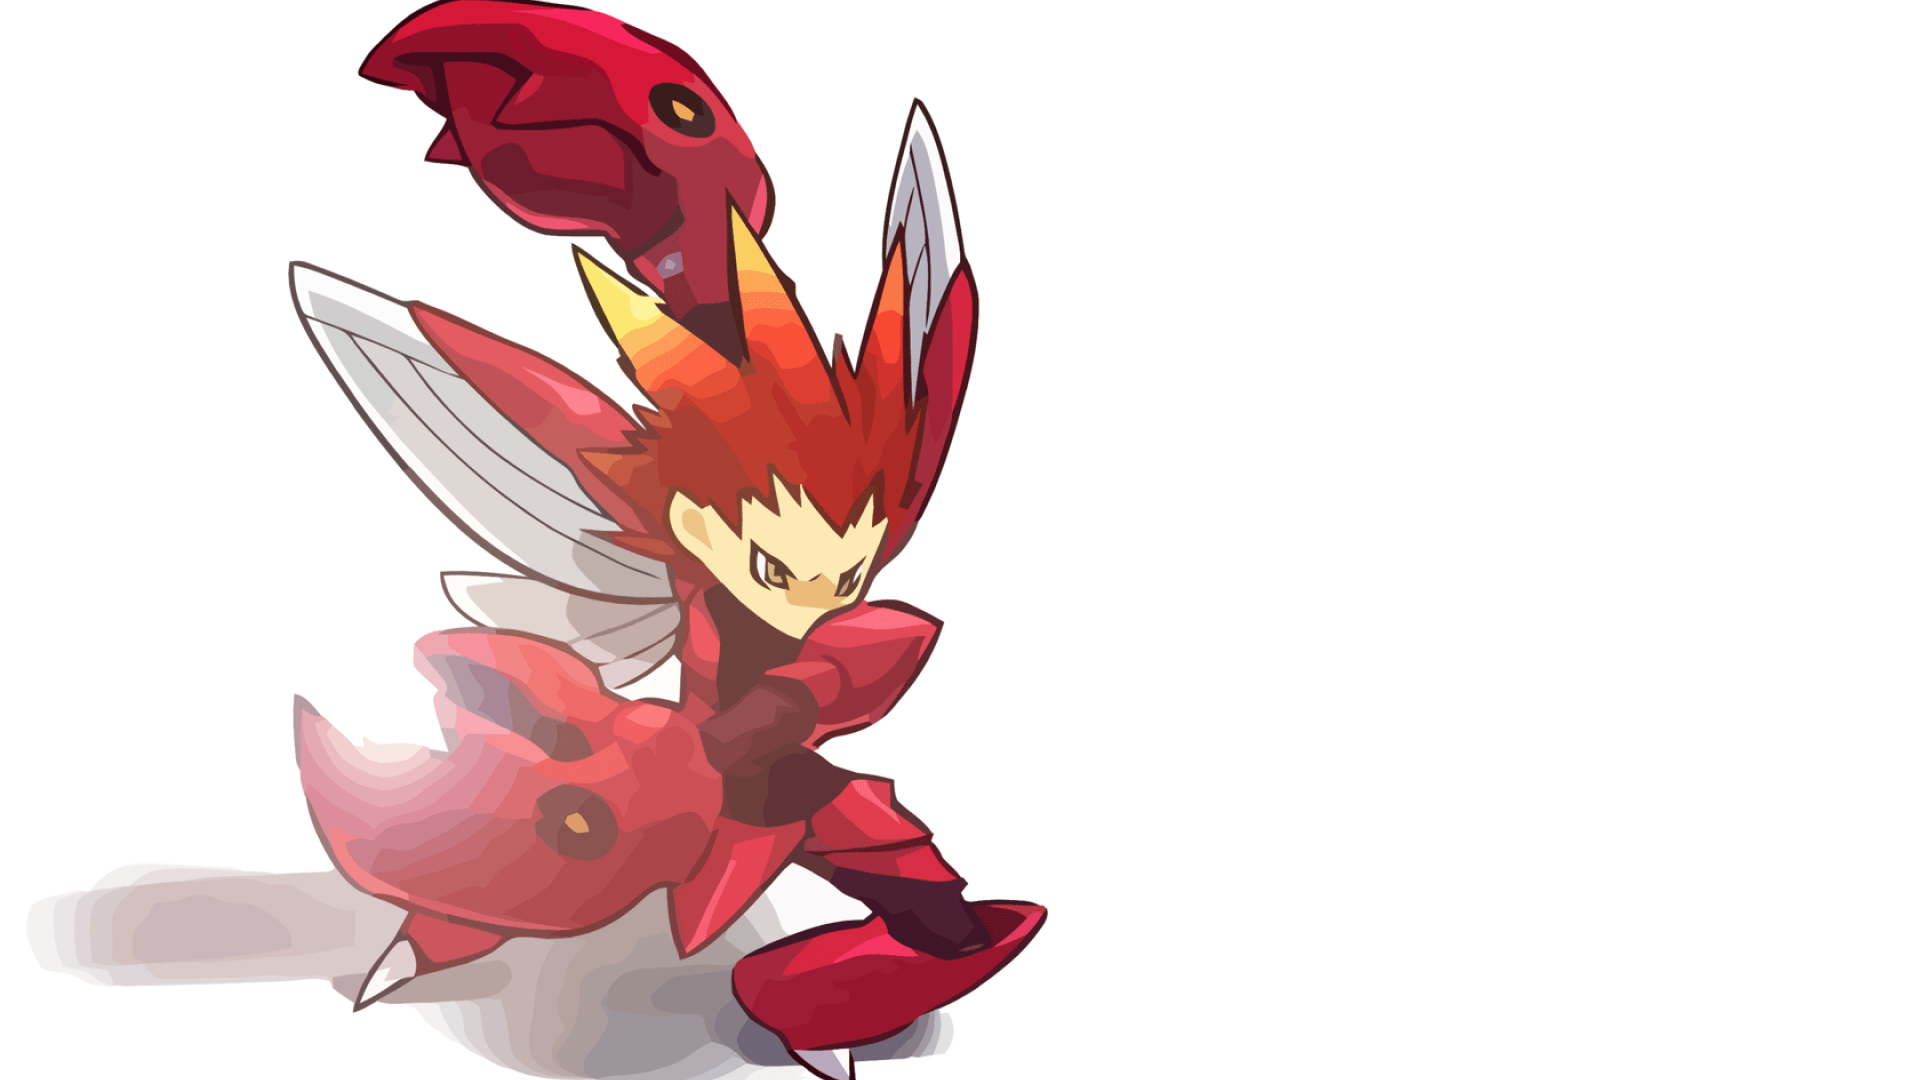 ScreenHeaven: Hitec Pokemon Scizor simple backgrounds desktop and